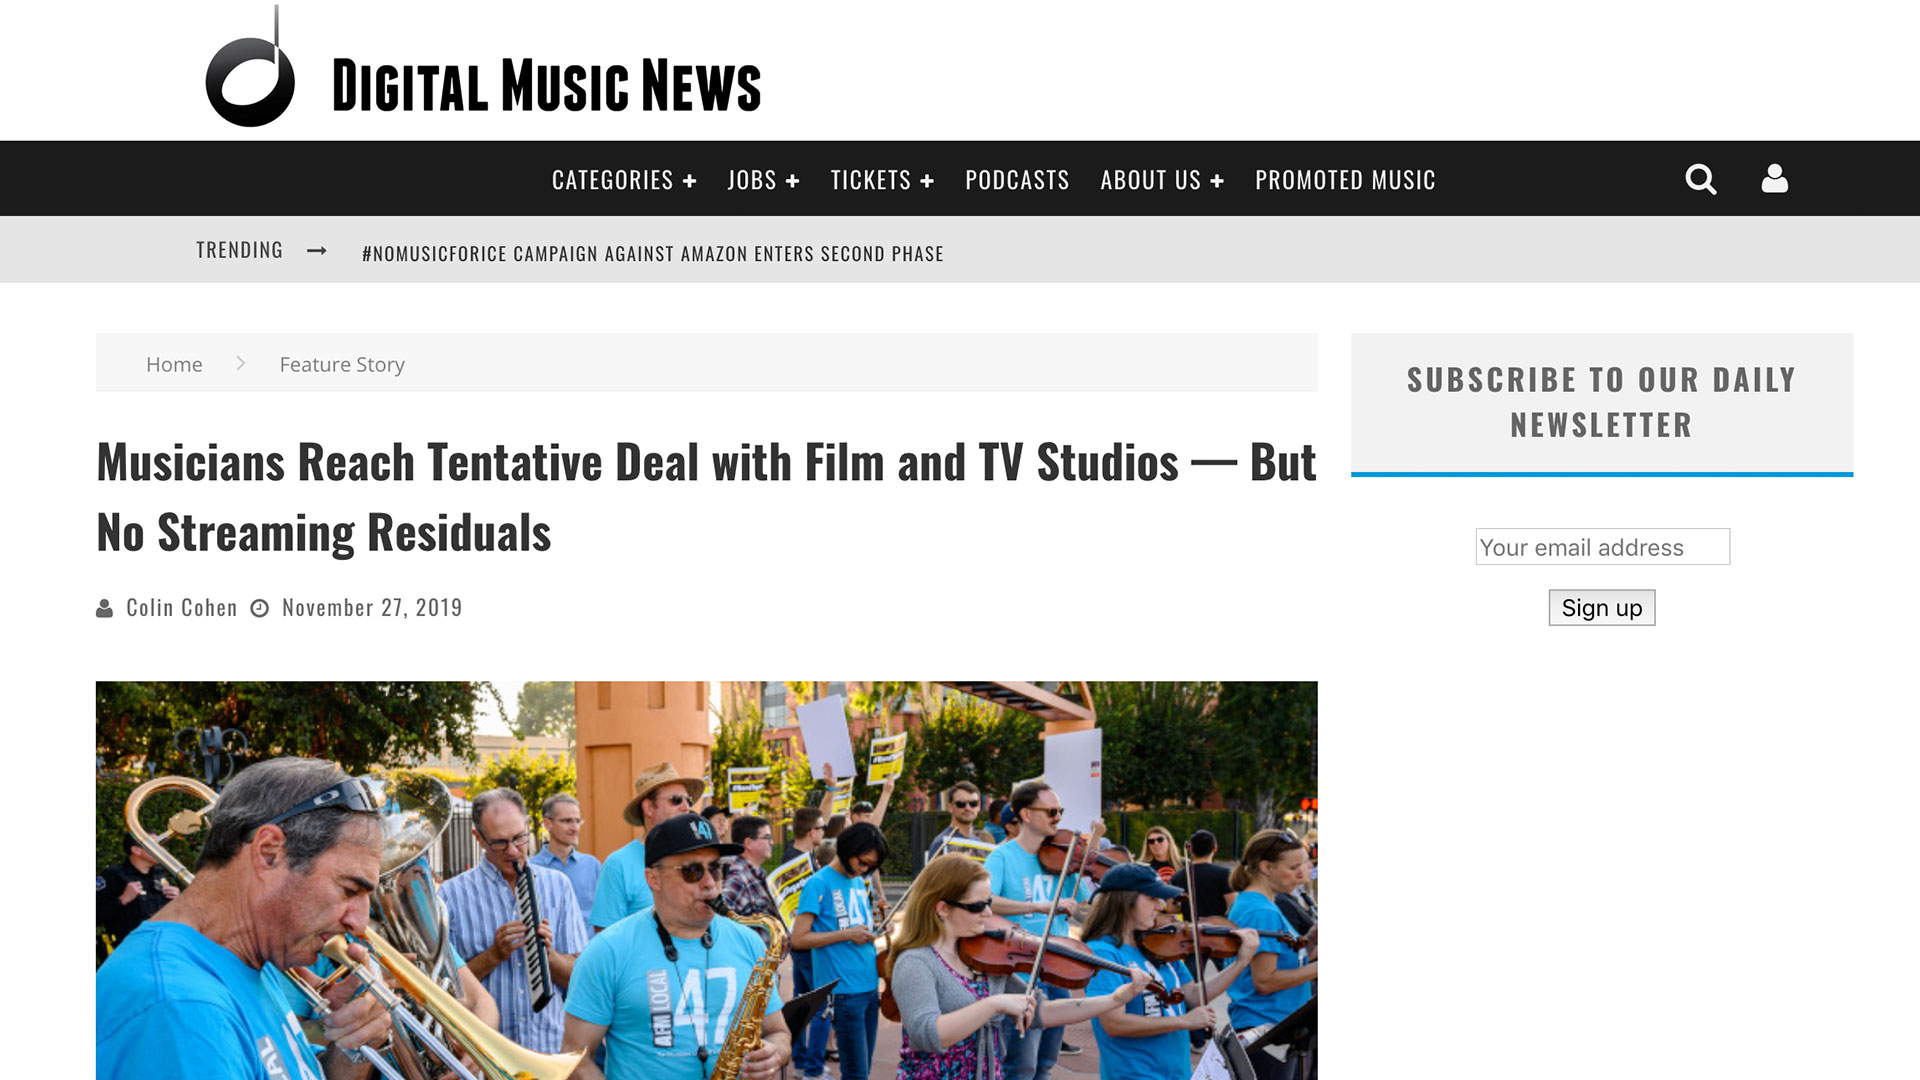 Fairness Rocks News Musicians Reach Tentative Deal with Film and TV Studios — But No Streaming Residuals